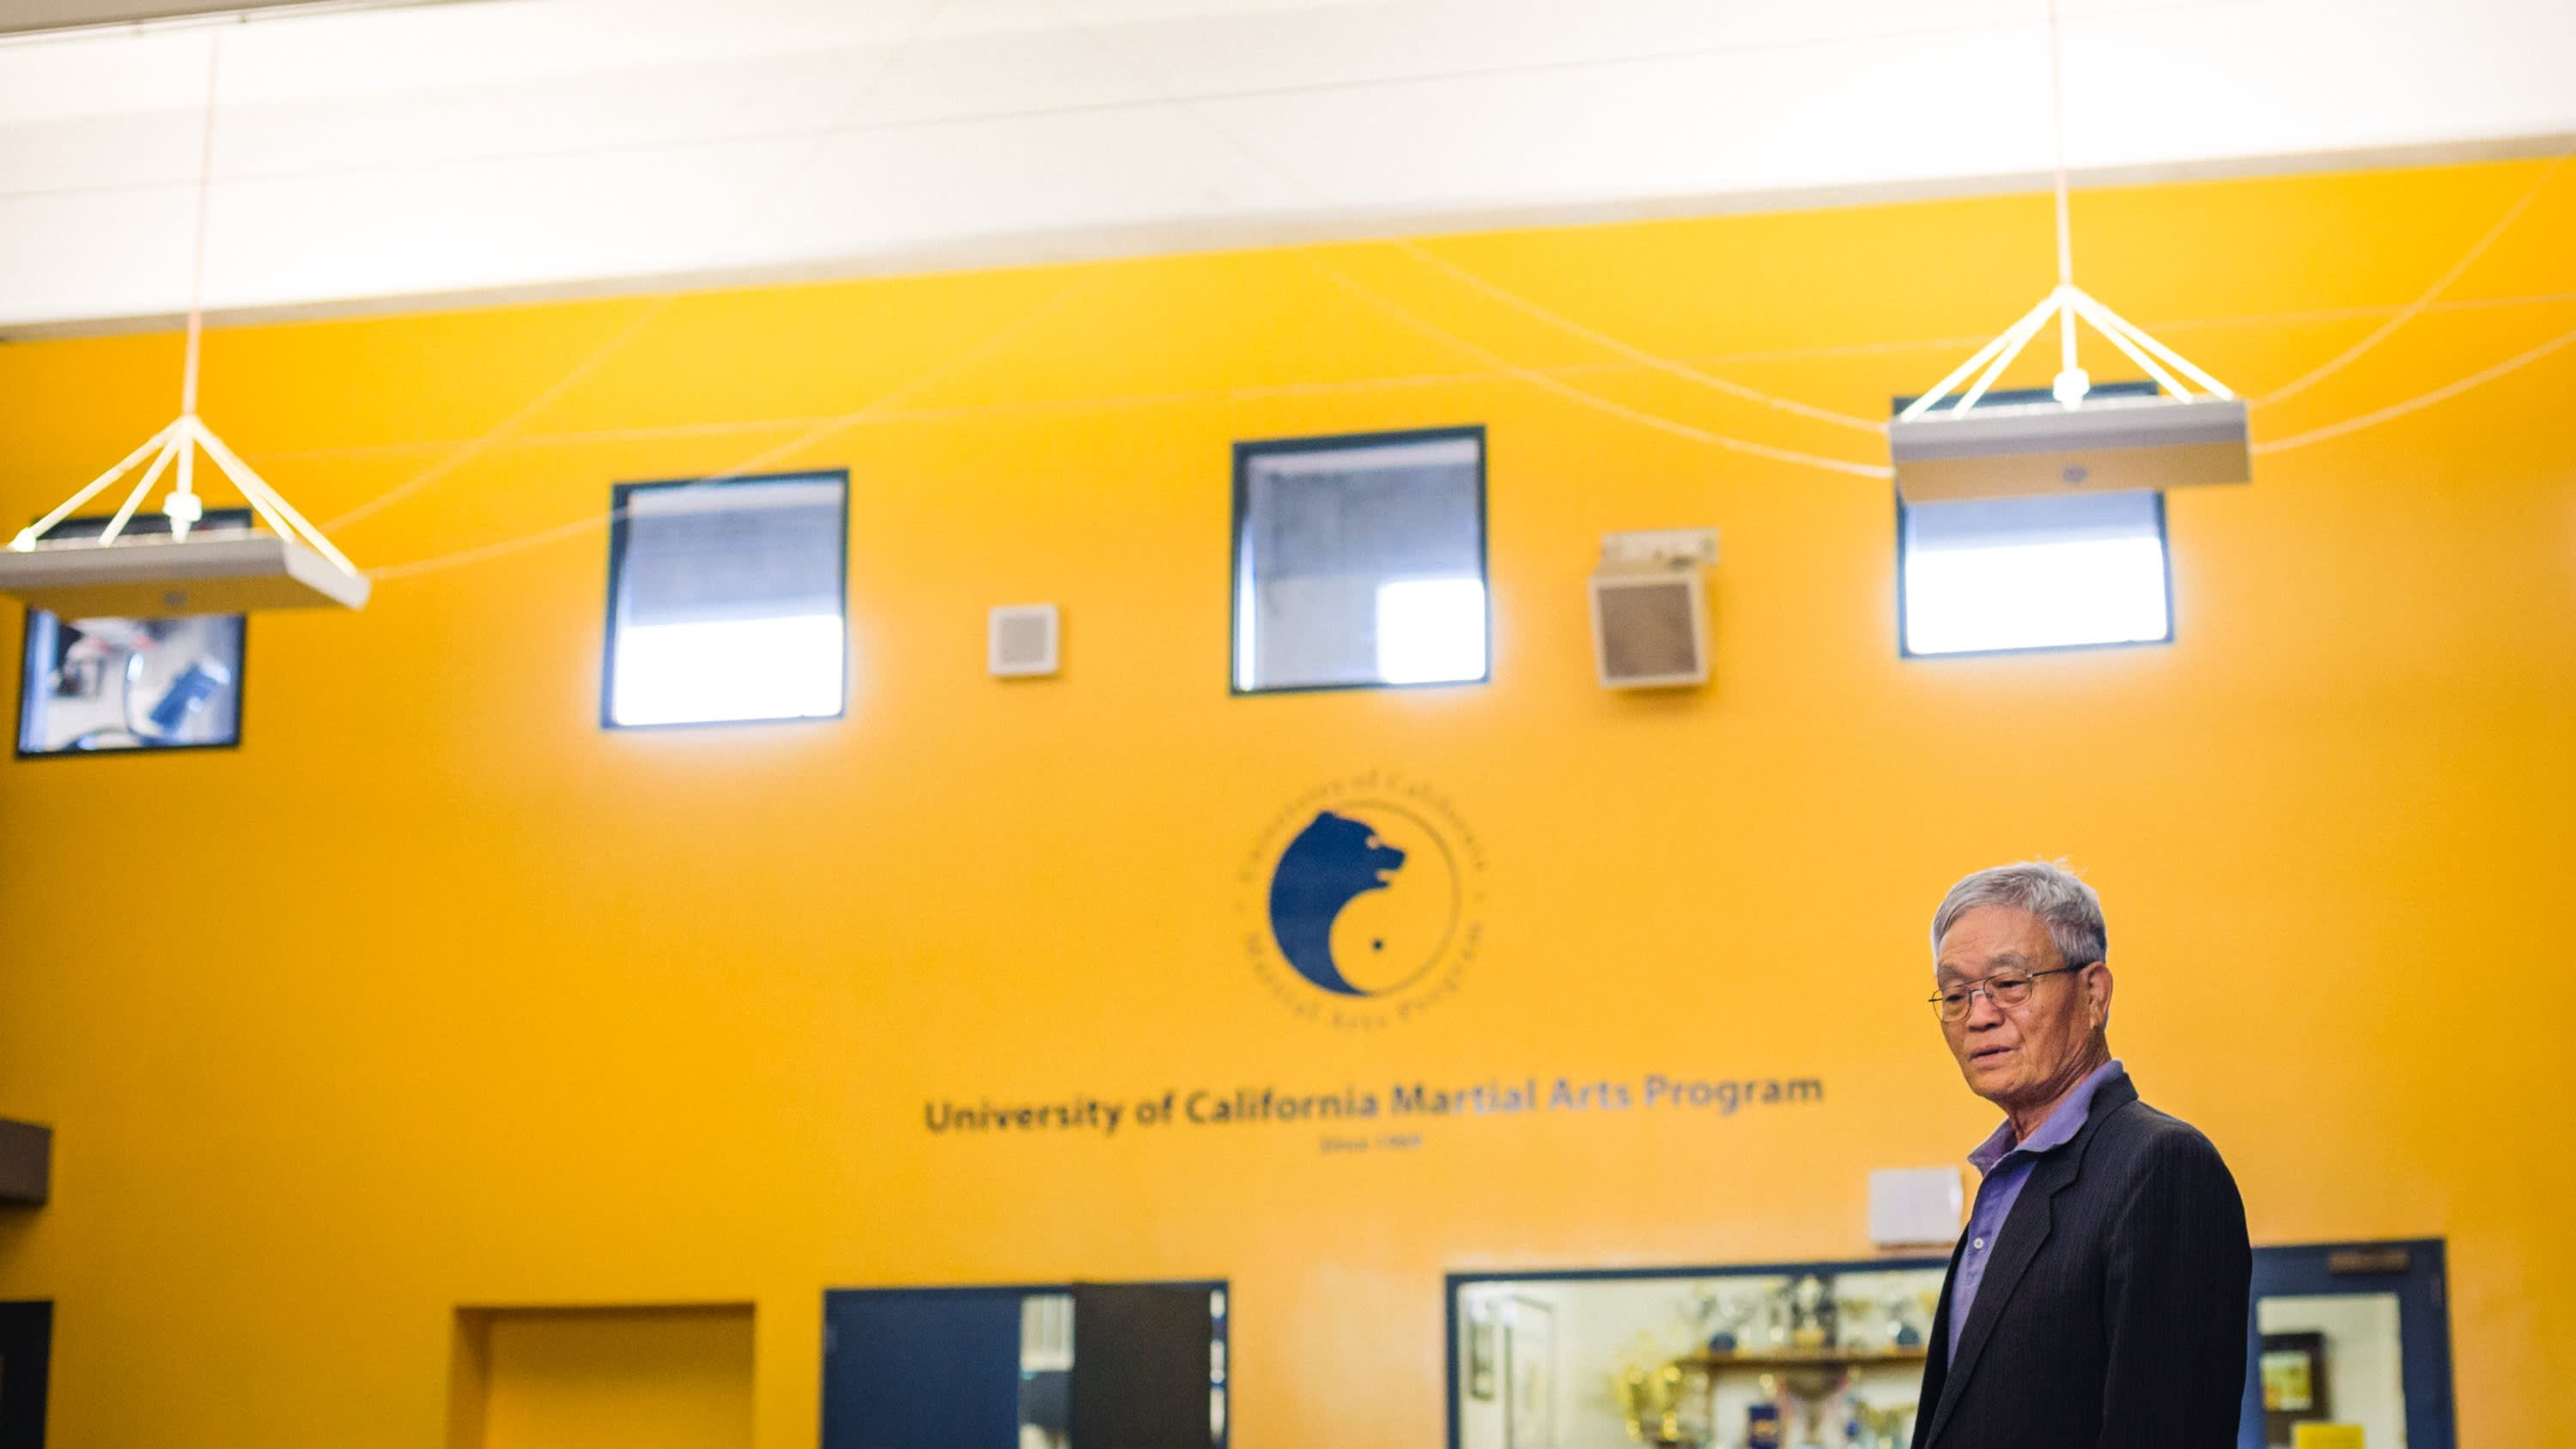 An older Korean gentleman in a suit jacket and button-down shirt against a bright yellow wall. Dr. Min in 2016 in 145 RSF, addressing students.